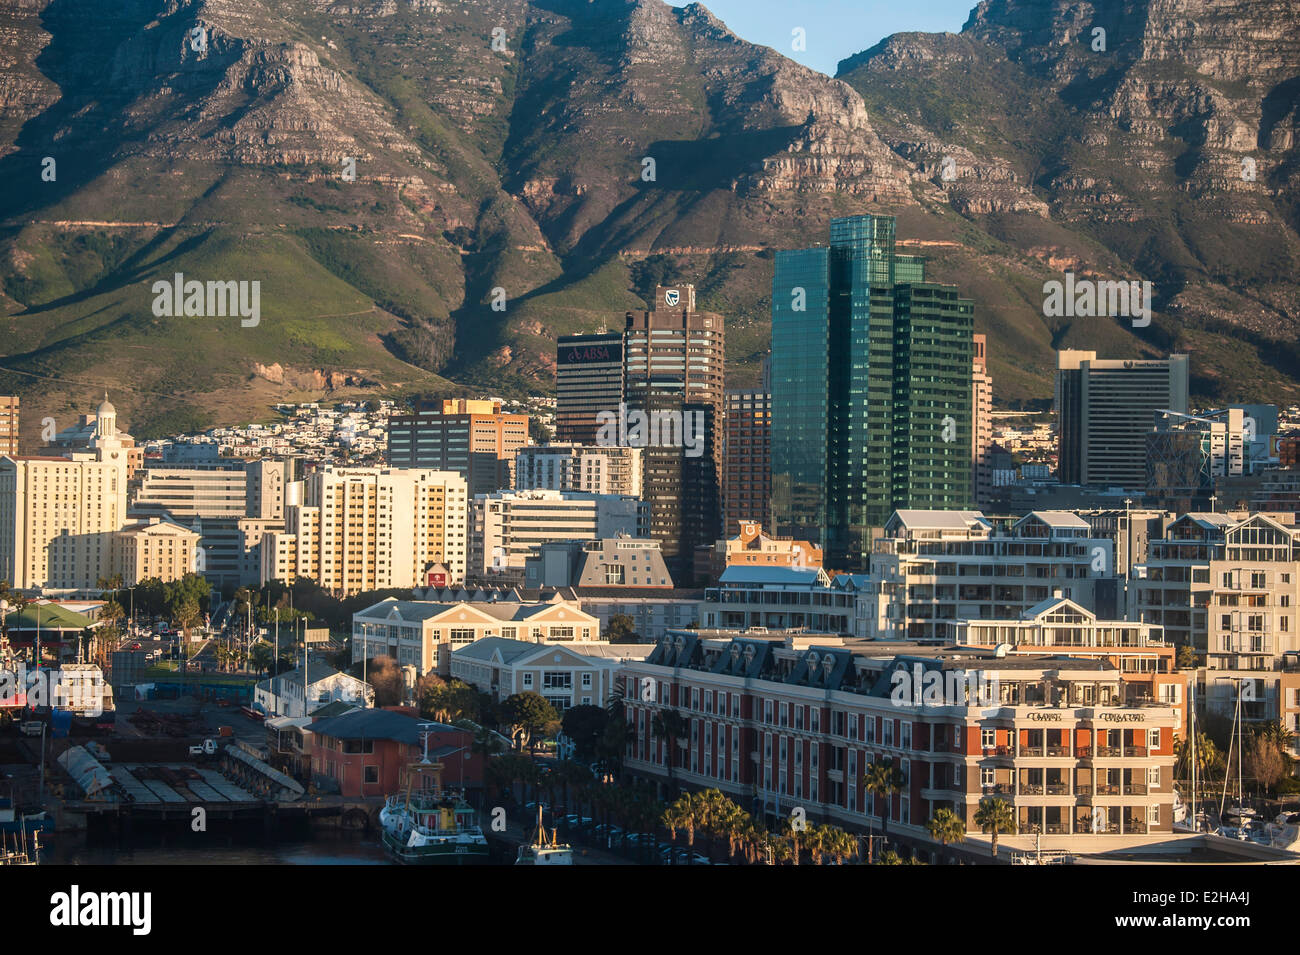 City Of Cape Town: Cape Town City Centre With Business Houses, Cape Town